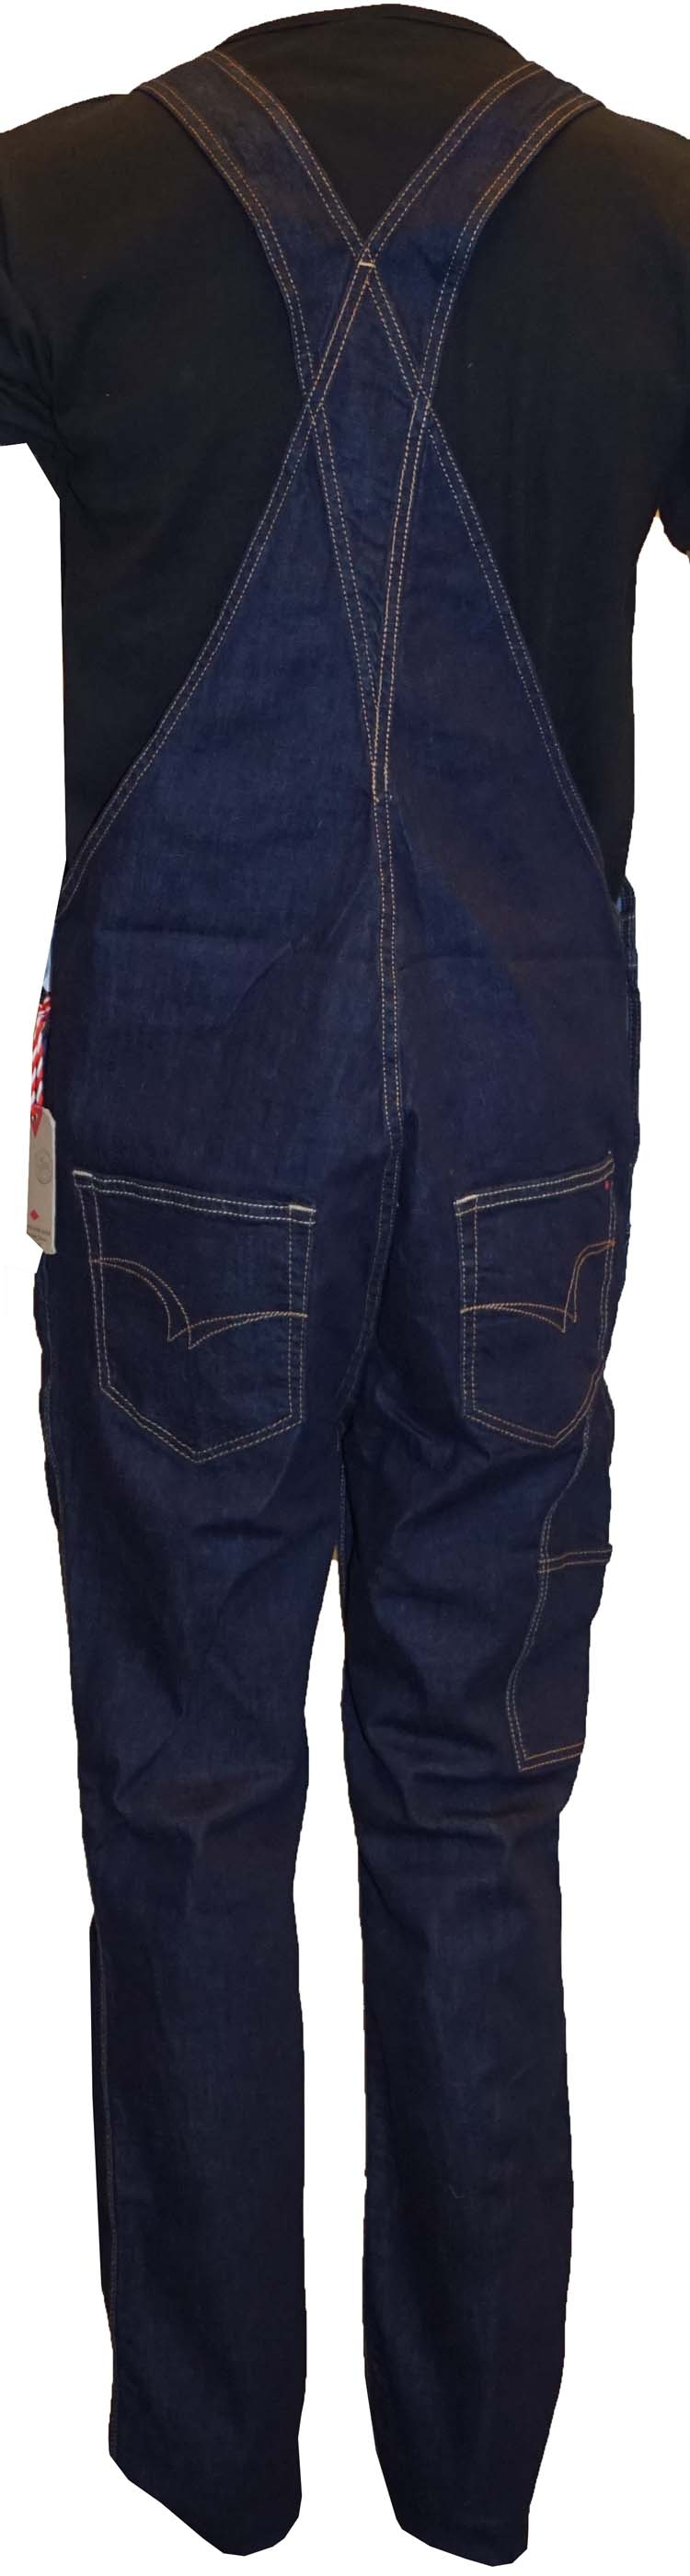 "Tuinbroek  "" Lee Cooper  ""  Ultra dark"